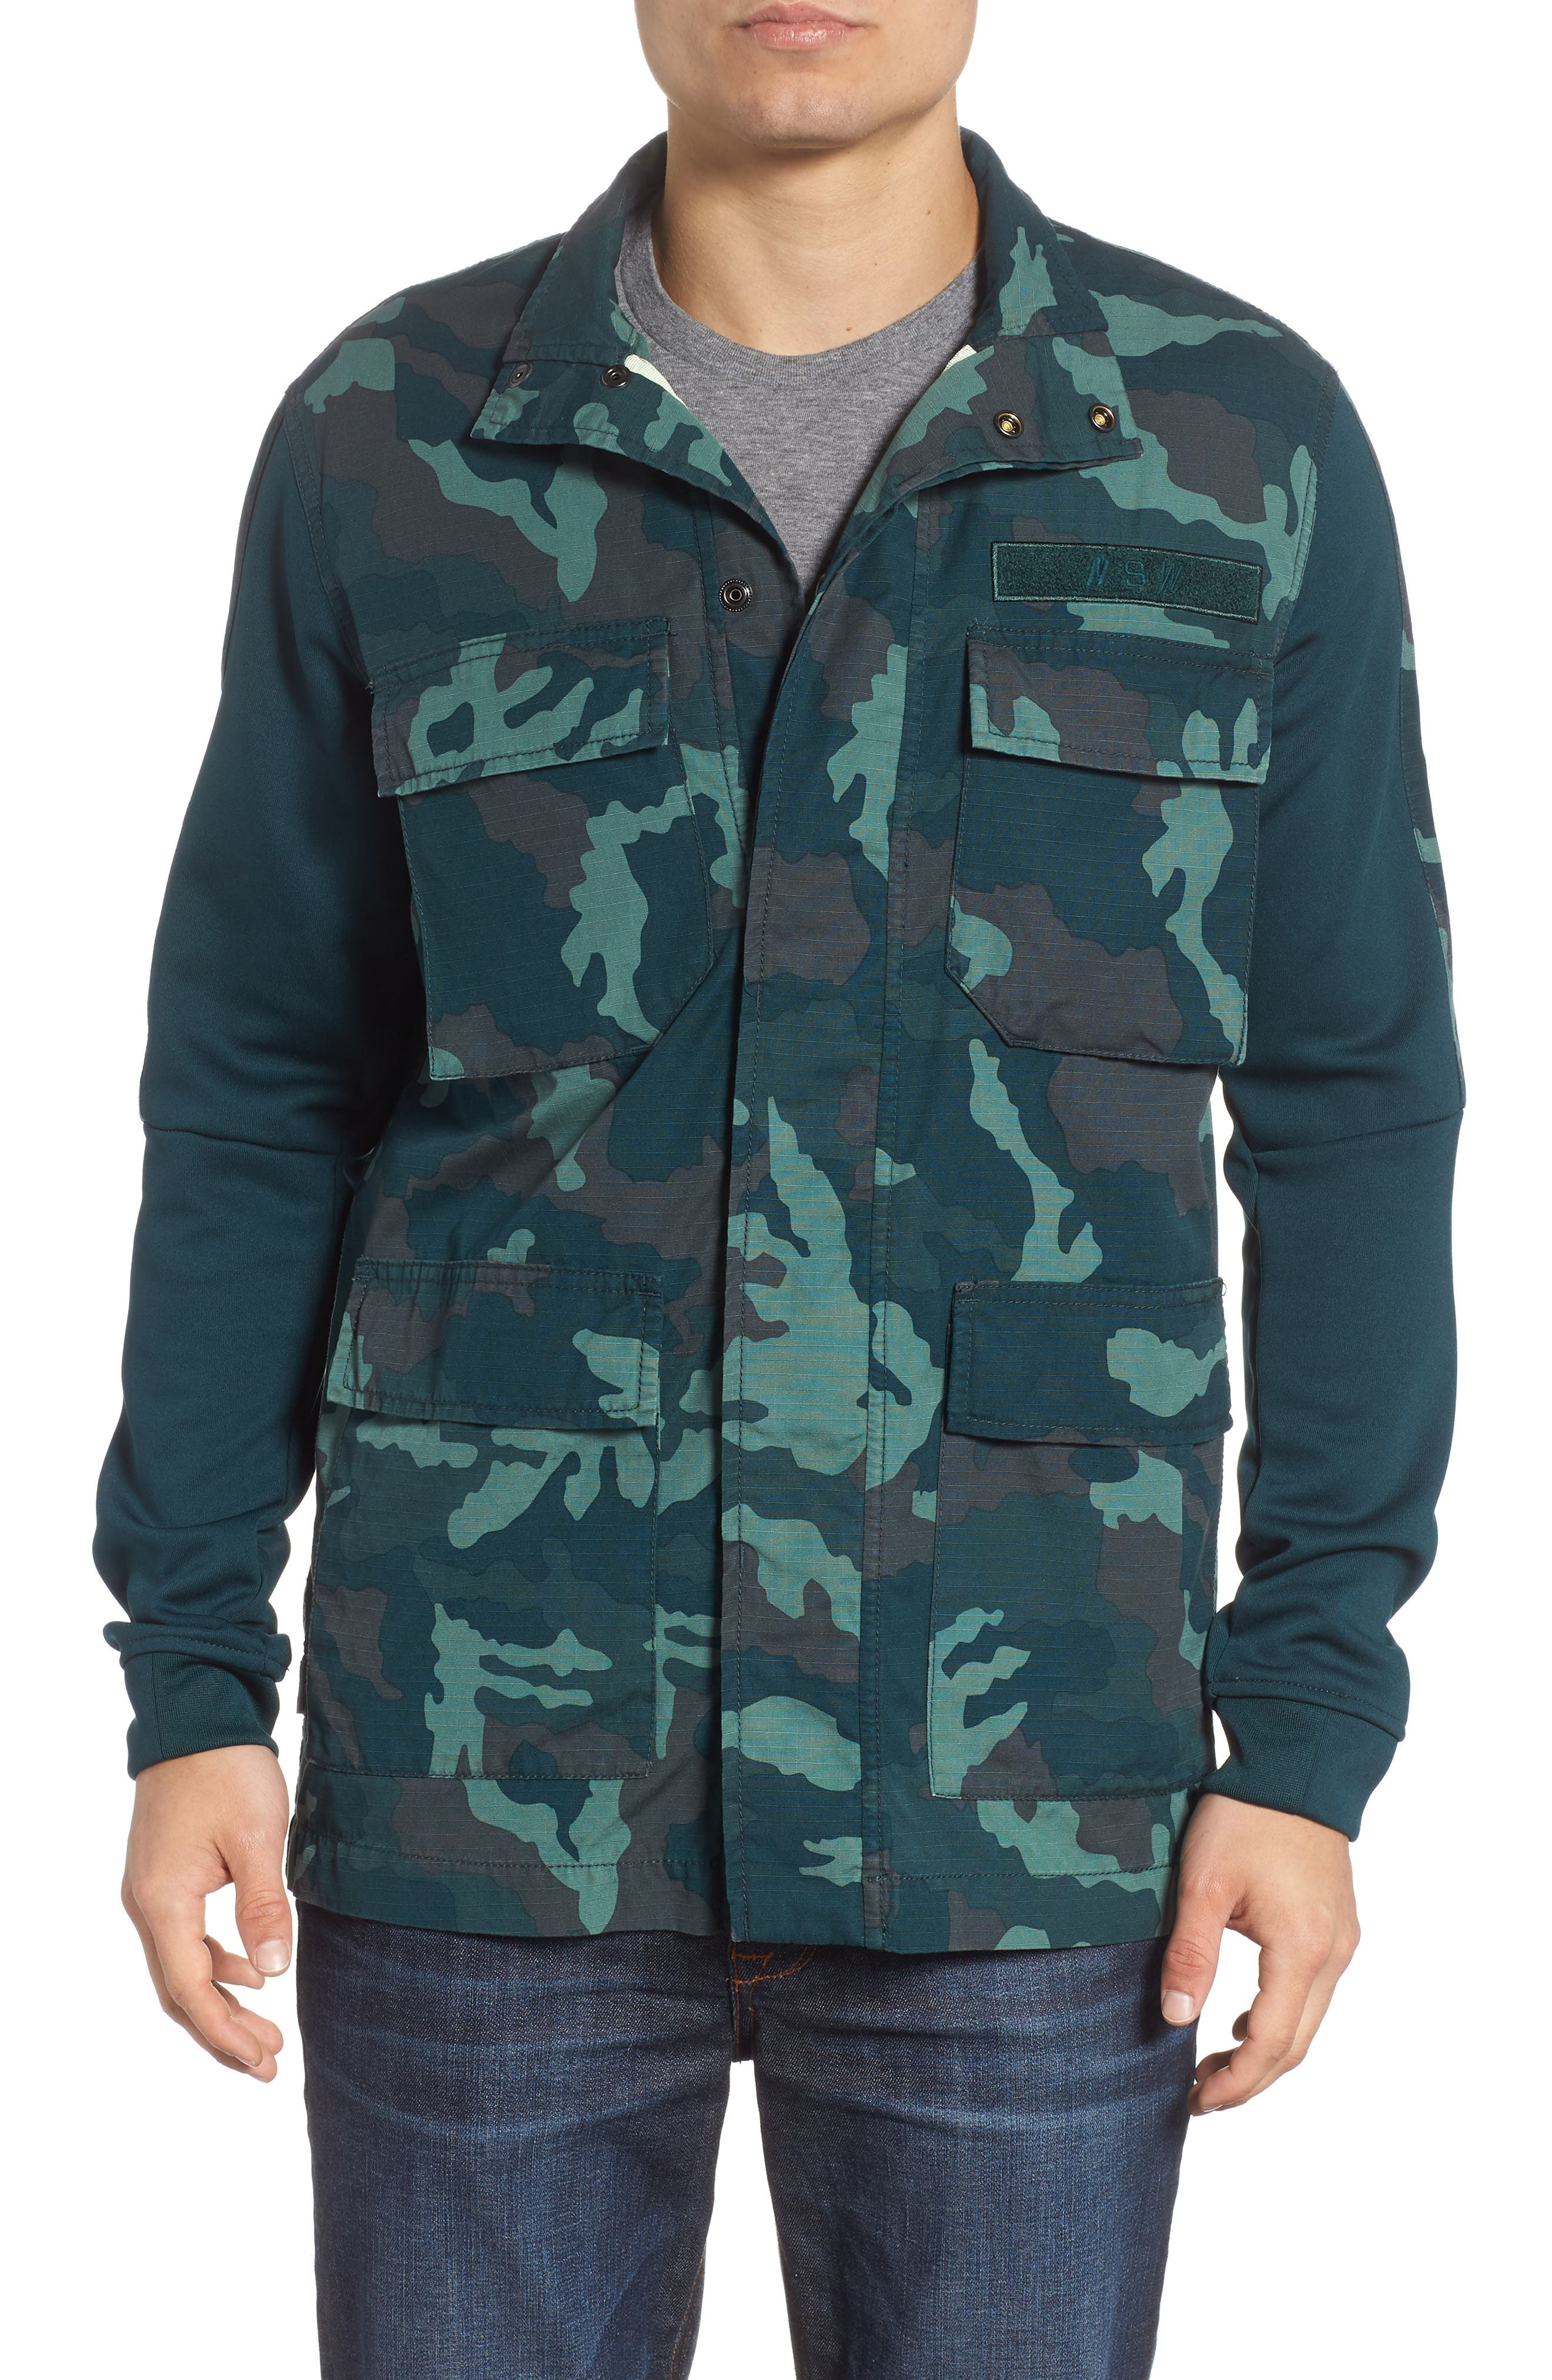 NSW Lightweight Camo Field Jacket,                         Main,                         color, MIDNIGHT SPRUCE